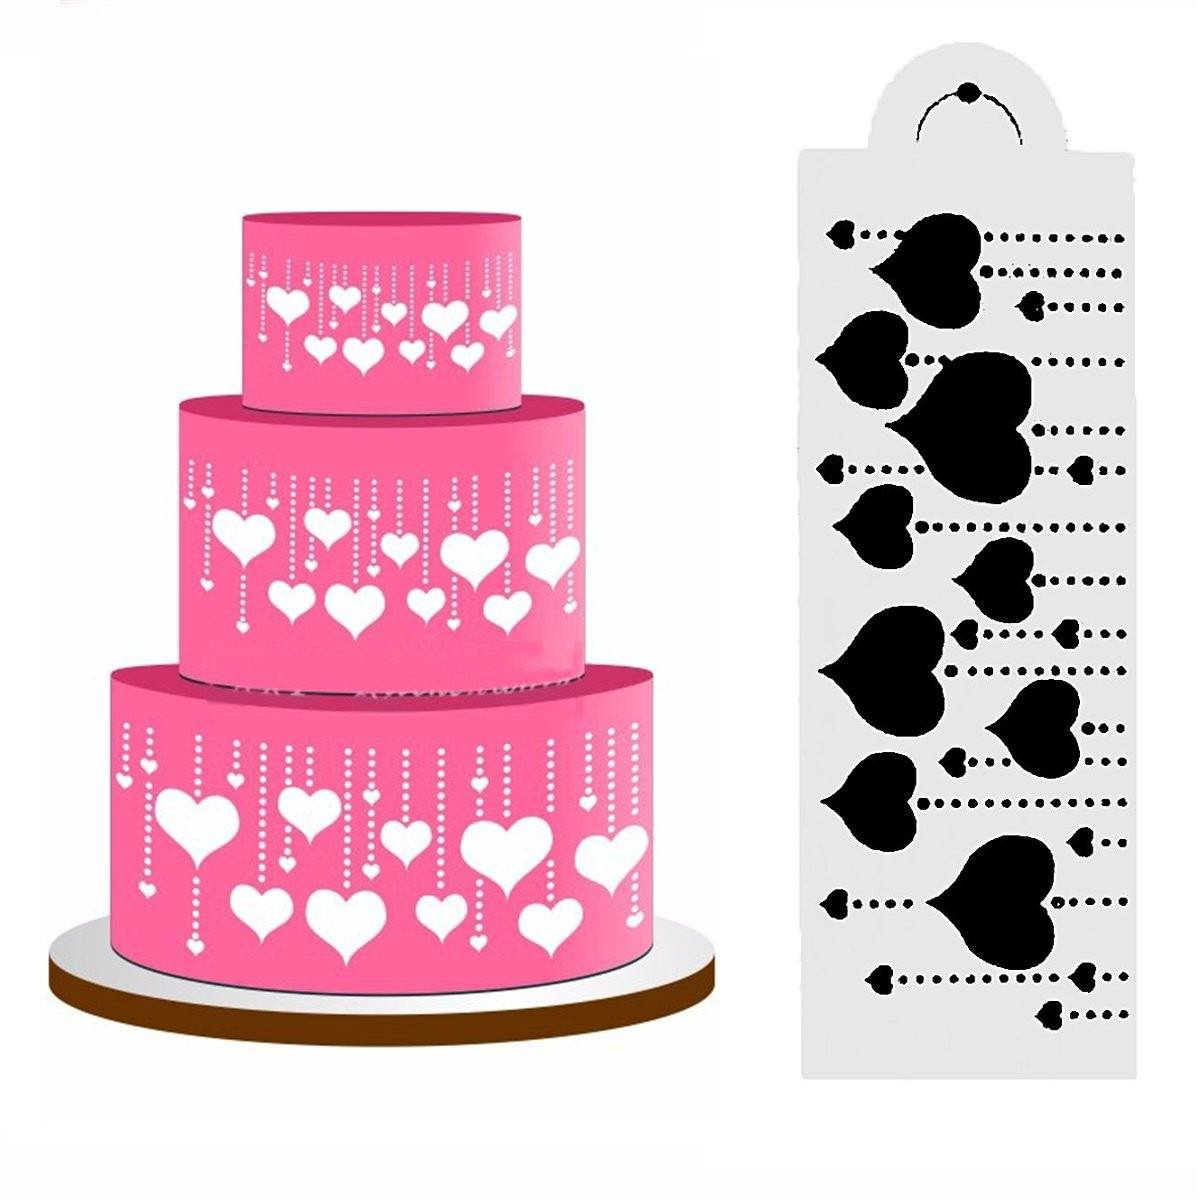 Heart Side Cake Stencil Fondant Mold Cake Decorating Tools DIY Craft Cookie Cake Stencils Baking Decor